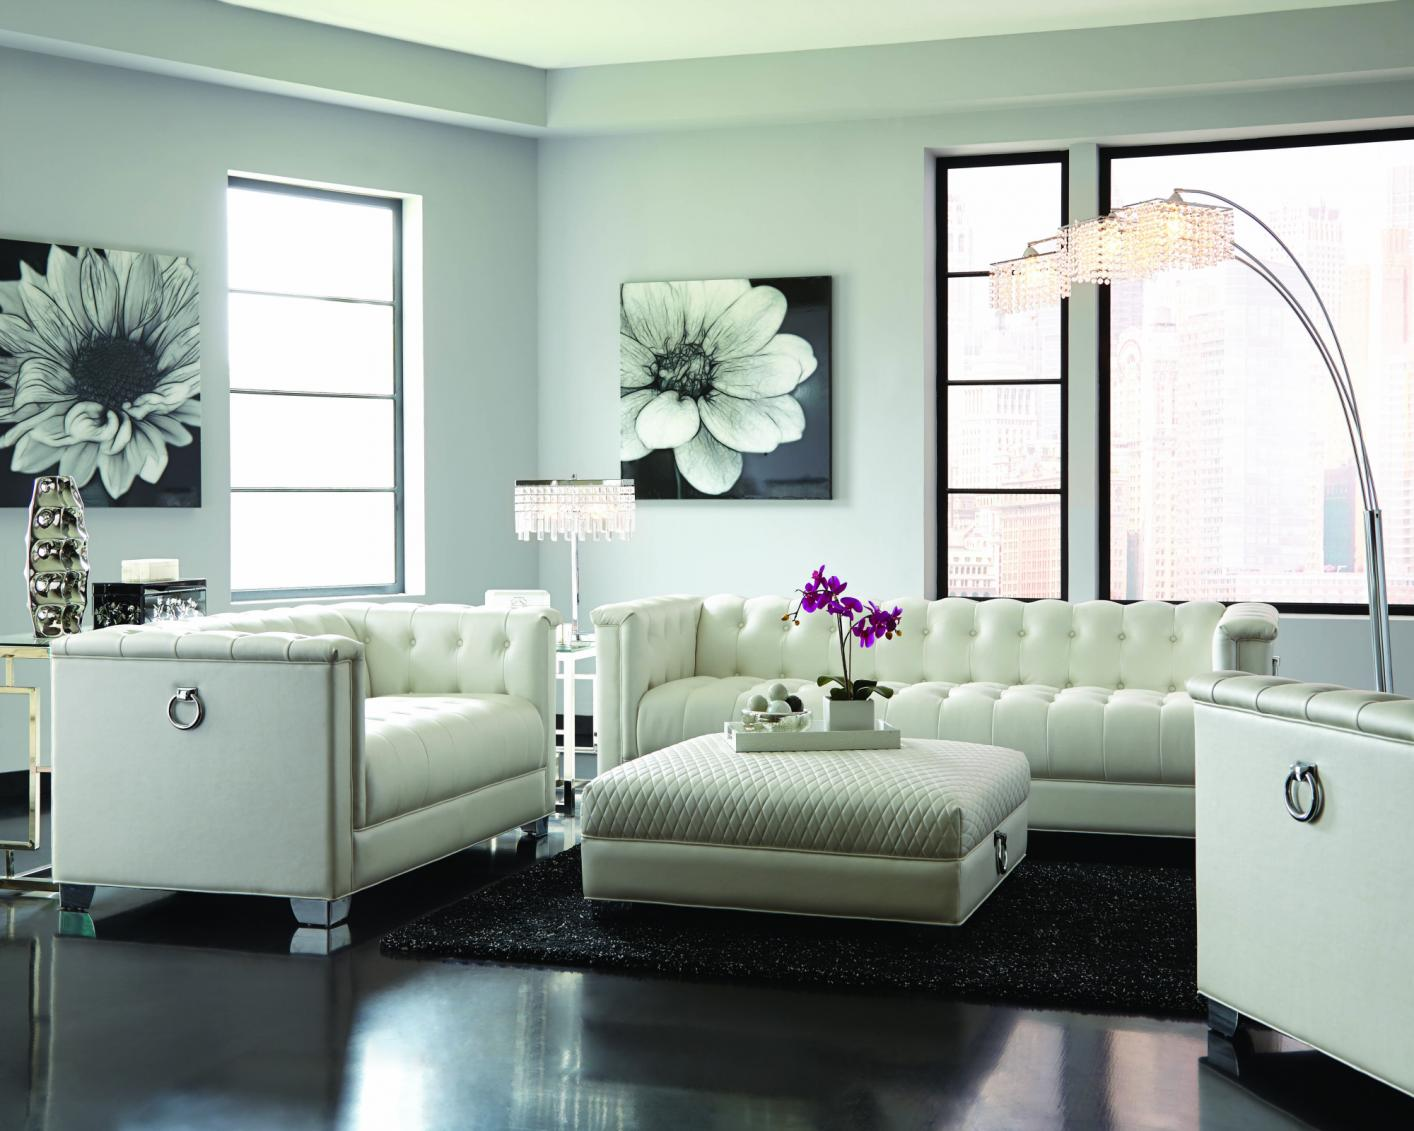 Chaviano White Leather Sofa Steal A Sofa Furniture